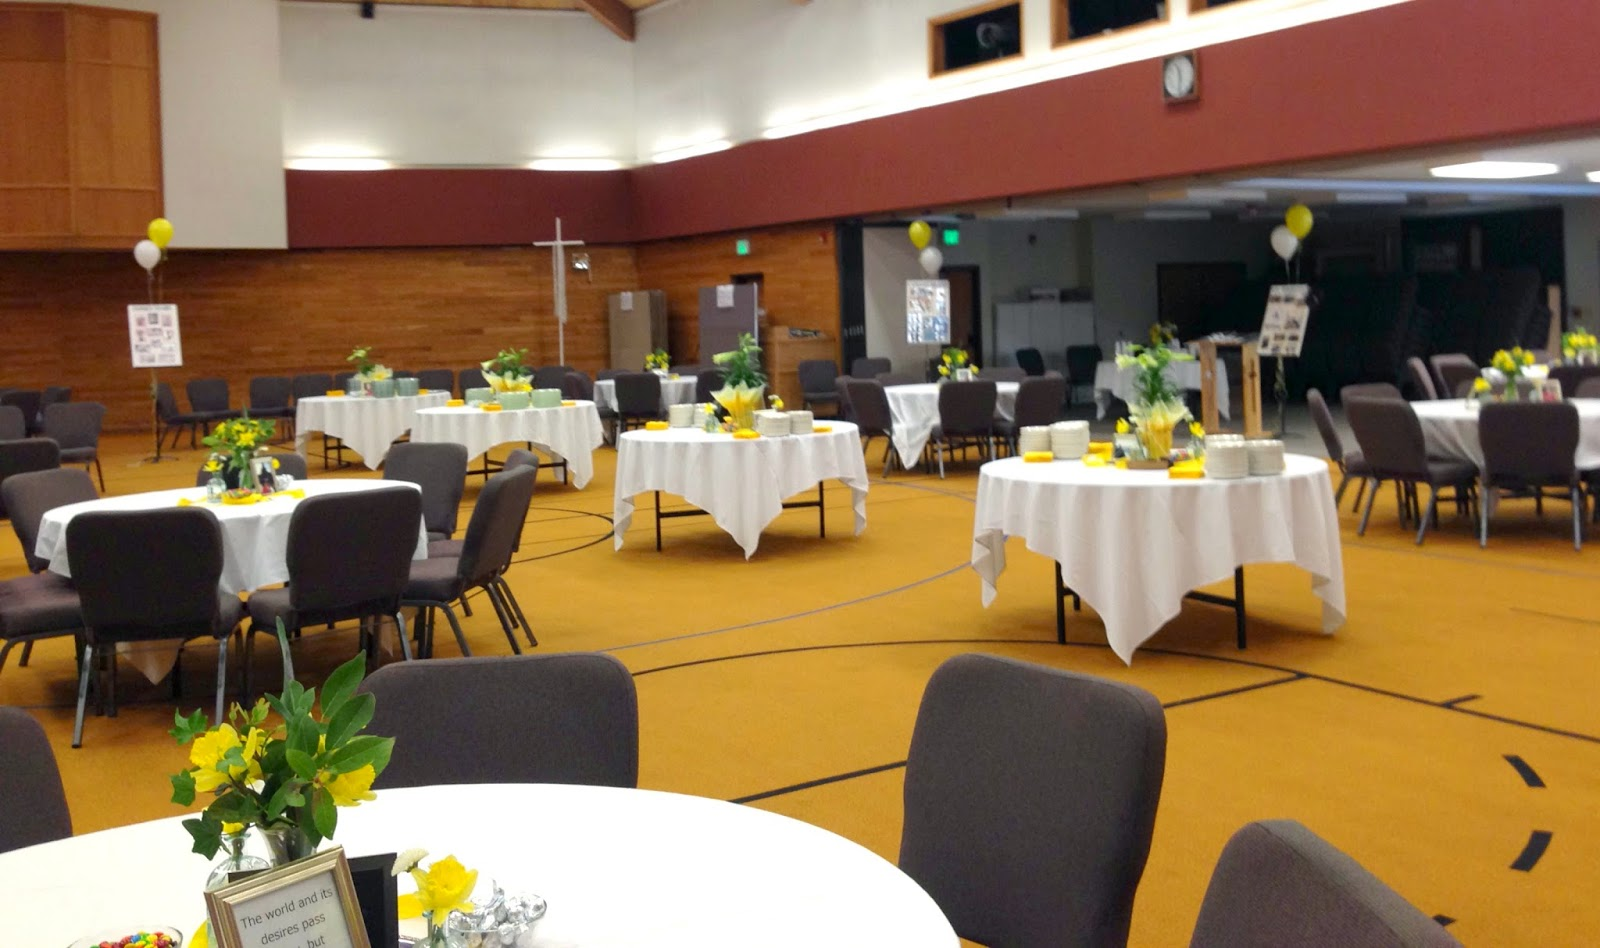 We Placed 4 Tables For Food In The Center Of Room A Dozen Sit Down Around Along With Chair Groupings Made Seem Full